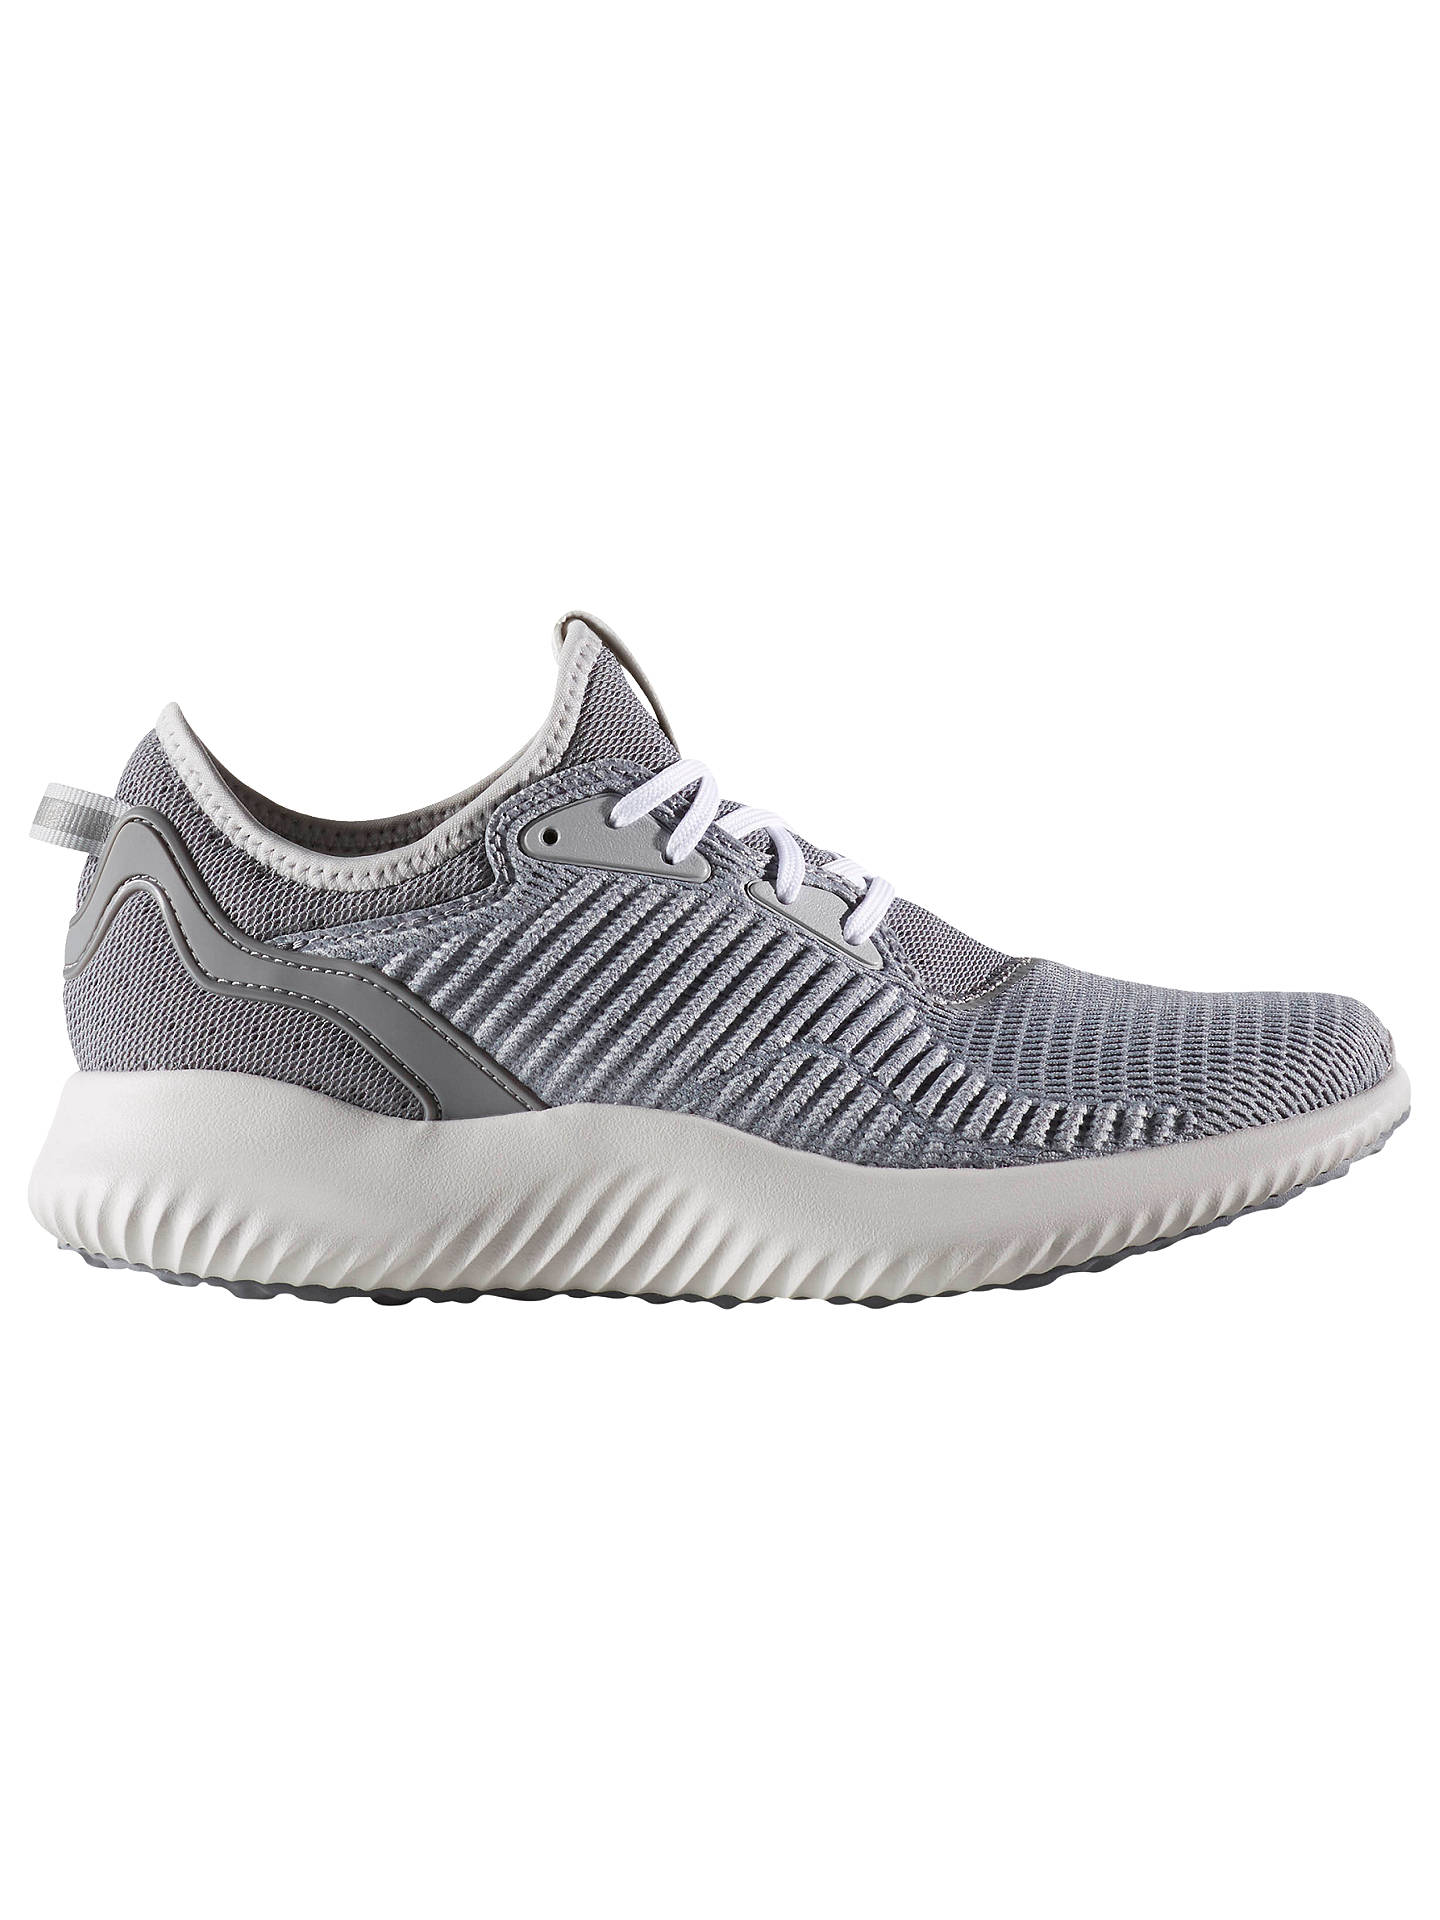 661bb53dc Buy adidas Alphabounce Lux Women s Running Shoes